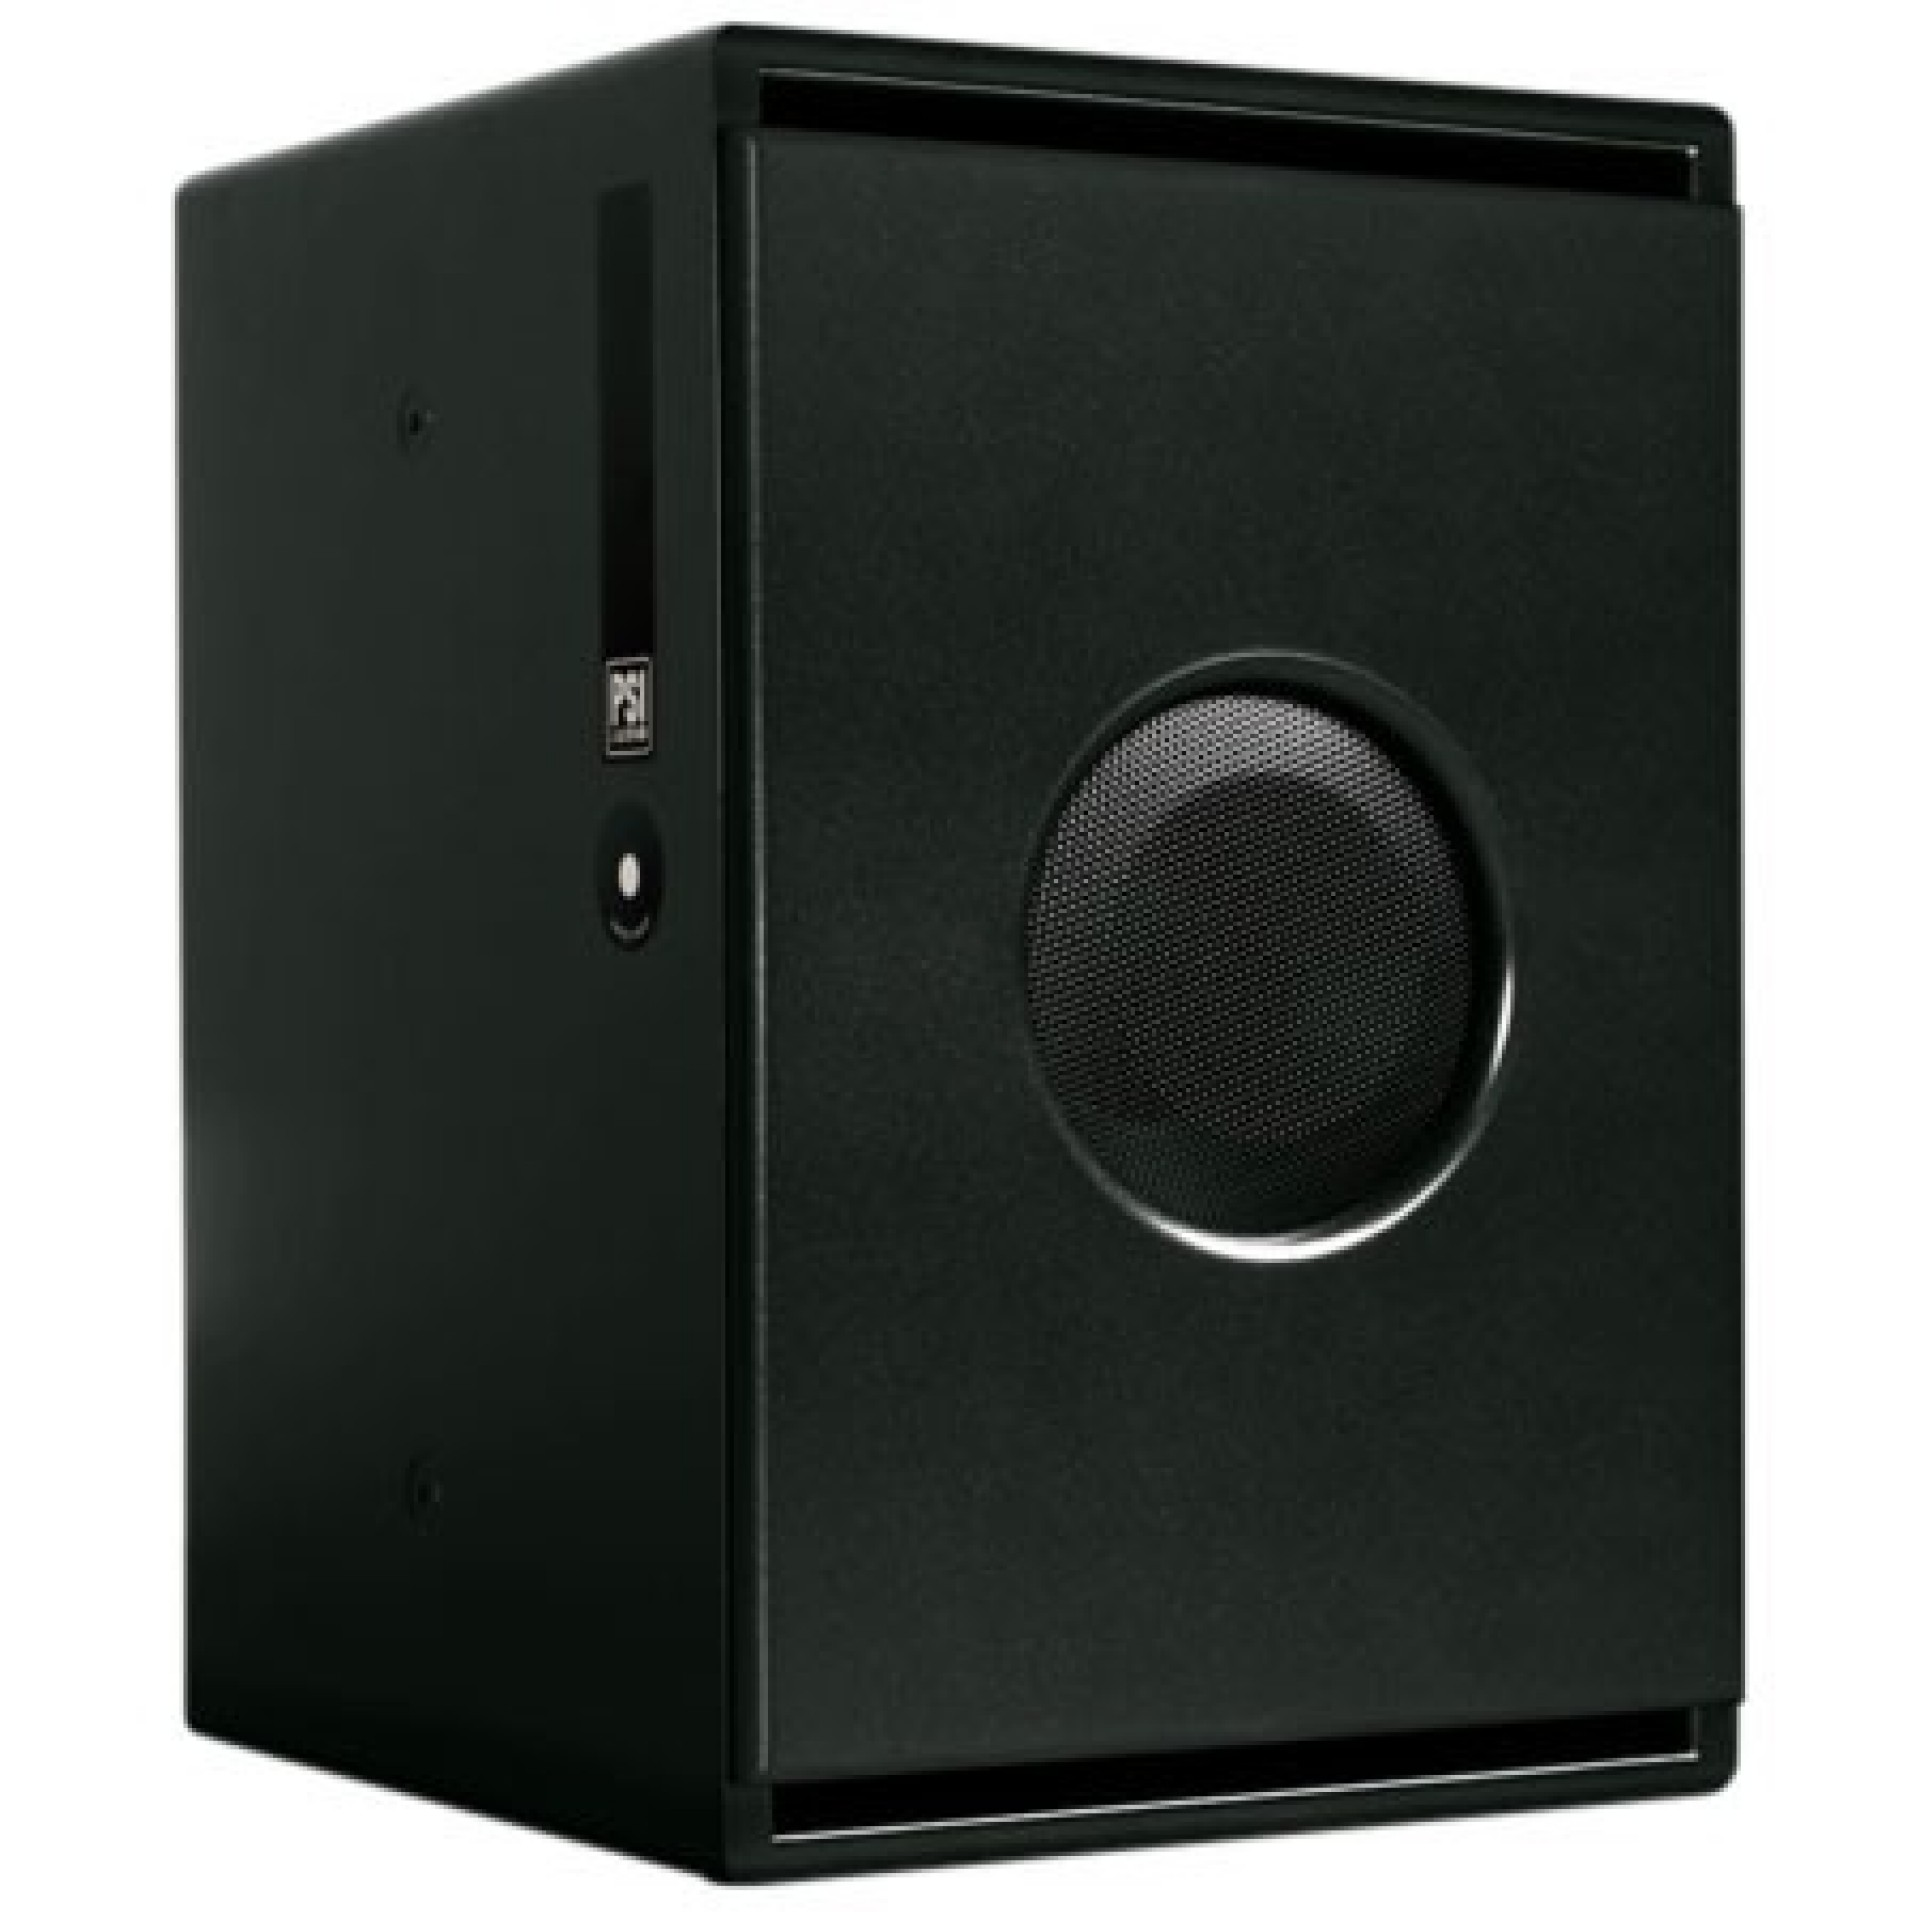 PSI AUDIO Sub A125-M Studio Black